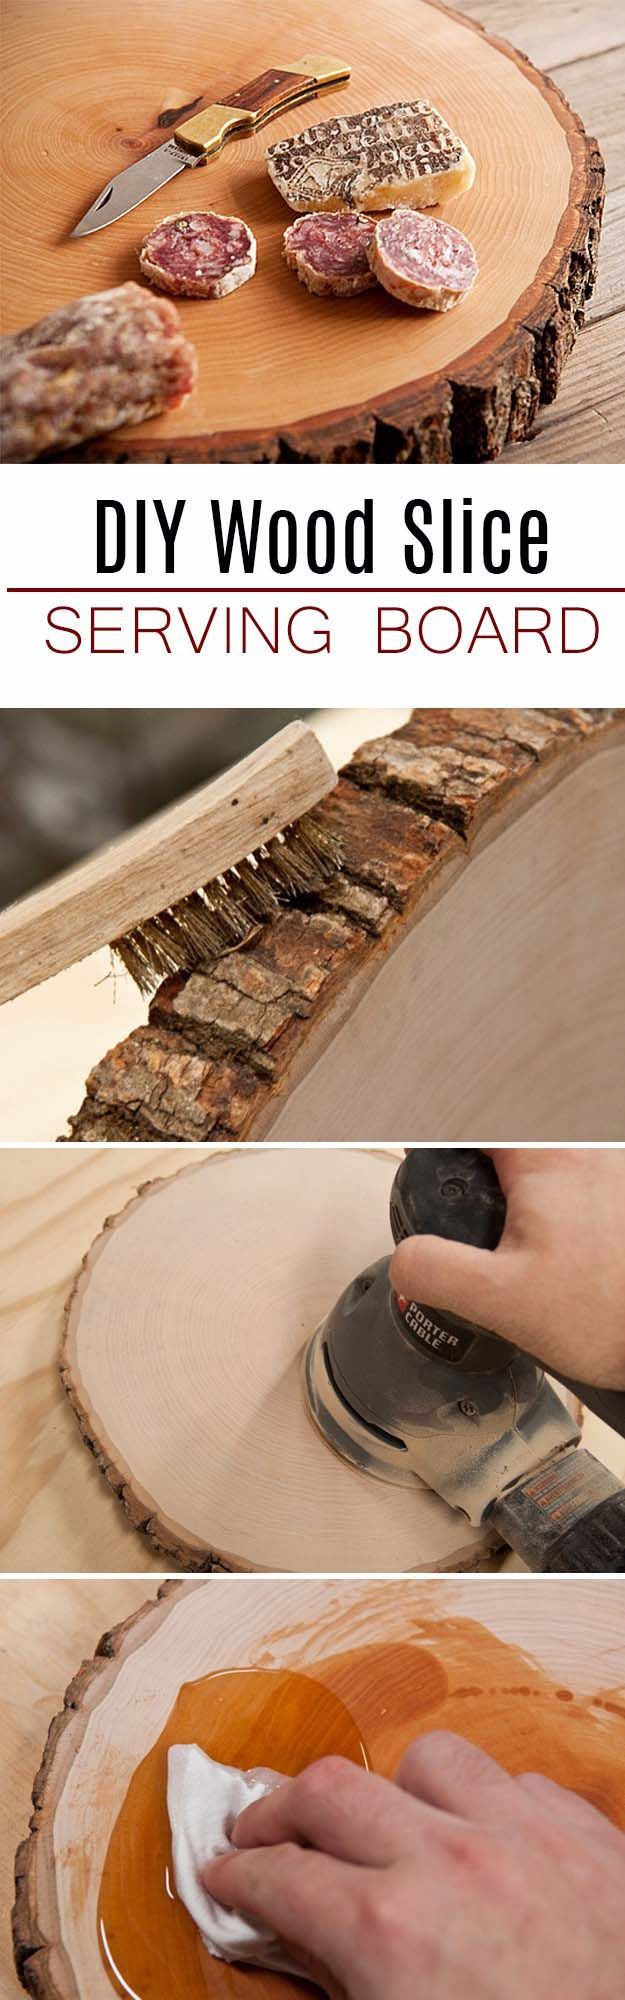 DIY Gifts For Men | Awesome Ideas for Your Boyfriend, Husband, Dad - Father , Brother and all the other important guys in your life. Cool Homemade DIY Crafts Men Will Truly Love to Receive for  Christmas, Birthdays, Anniversaries and Valentine's Day | Wood Slice Serving Board for Him |  http://diyjoy.com/diy-gifts-for-men-pinterest